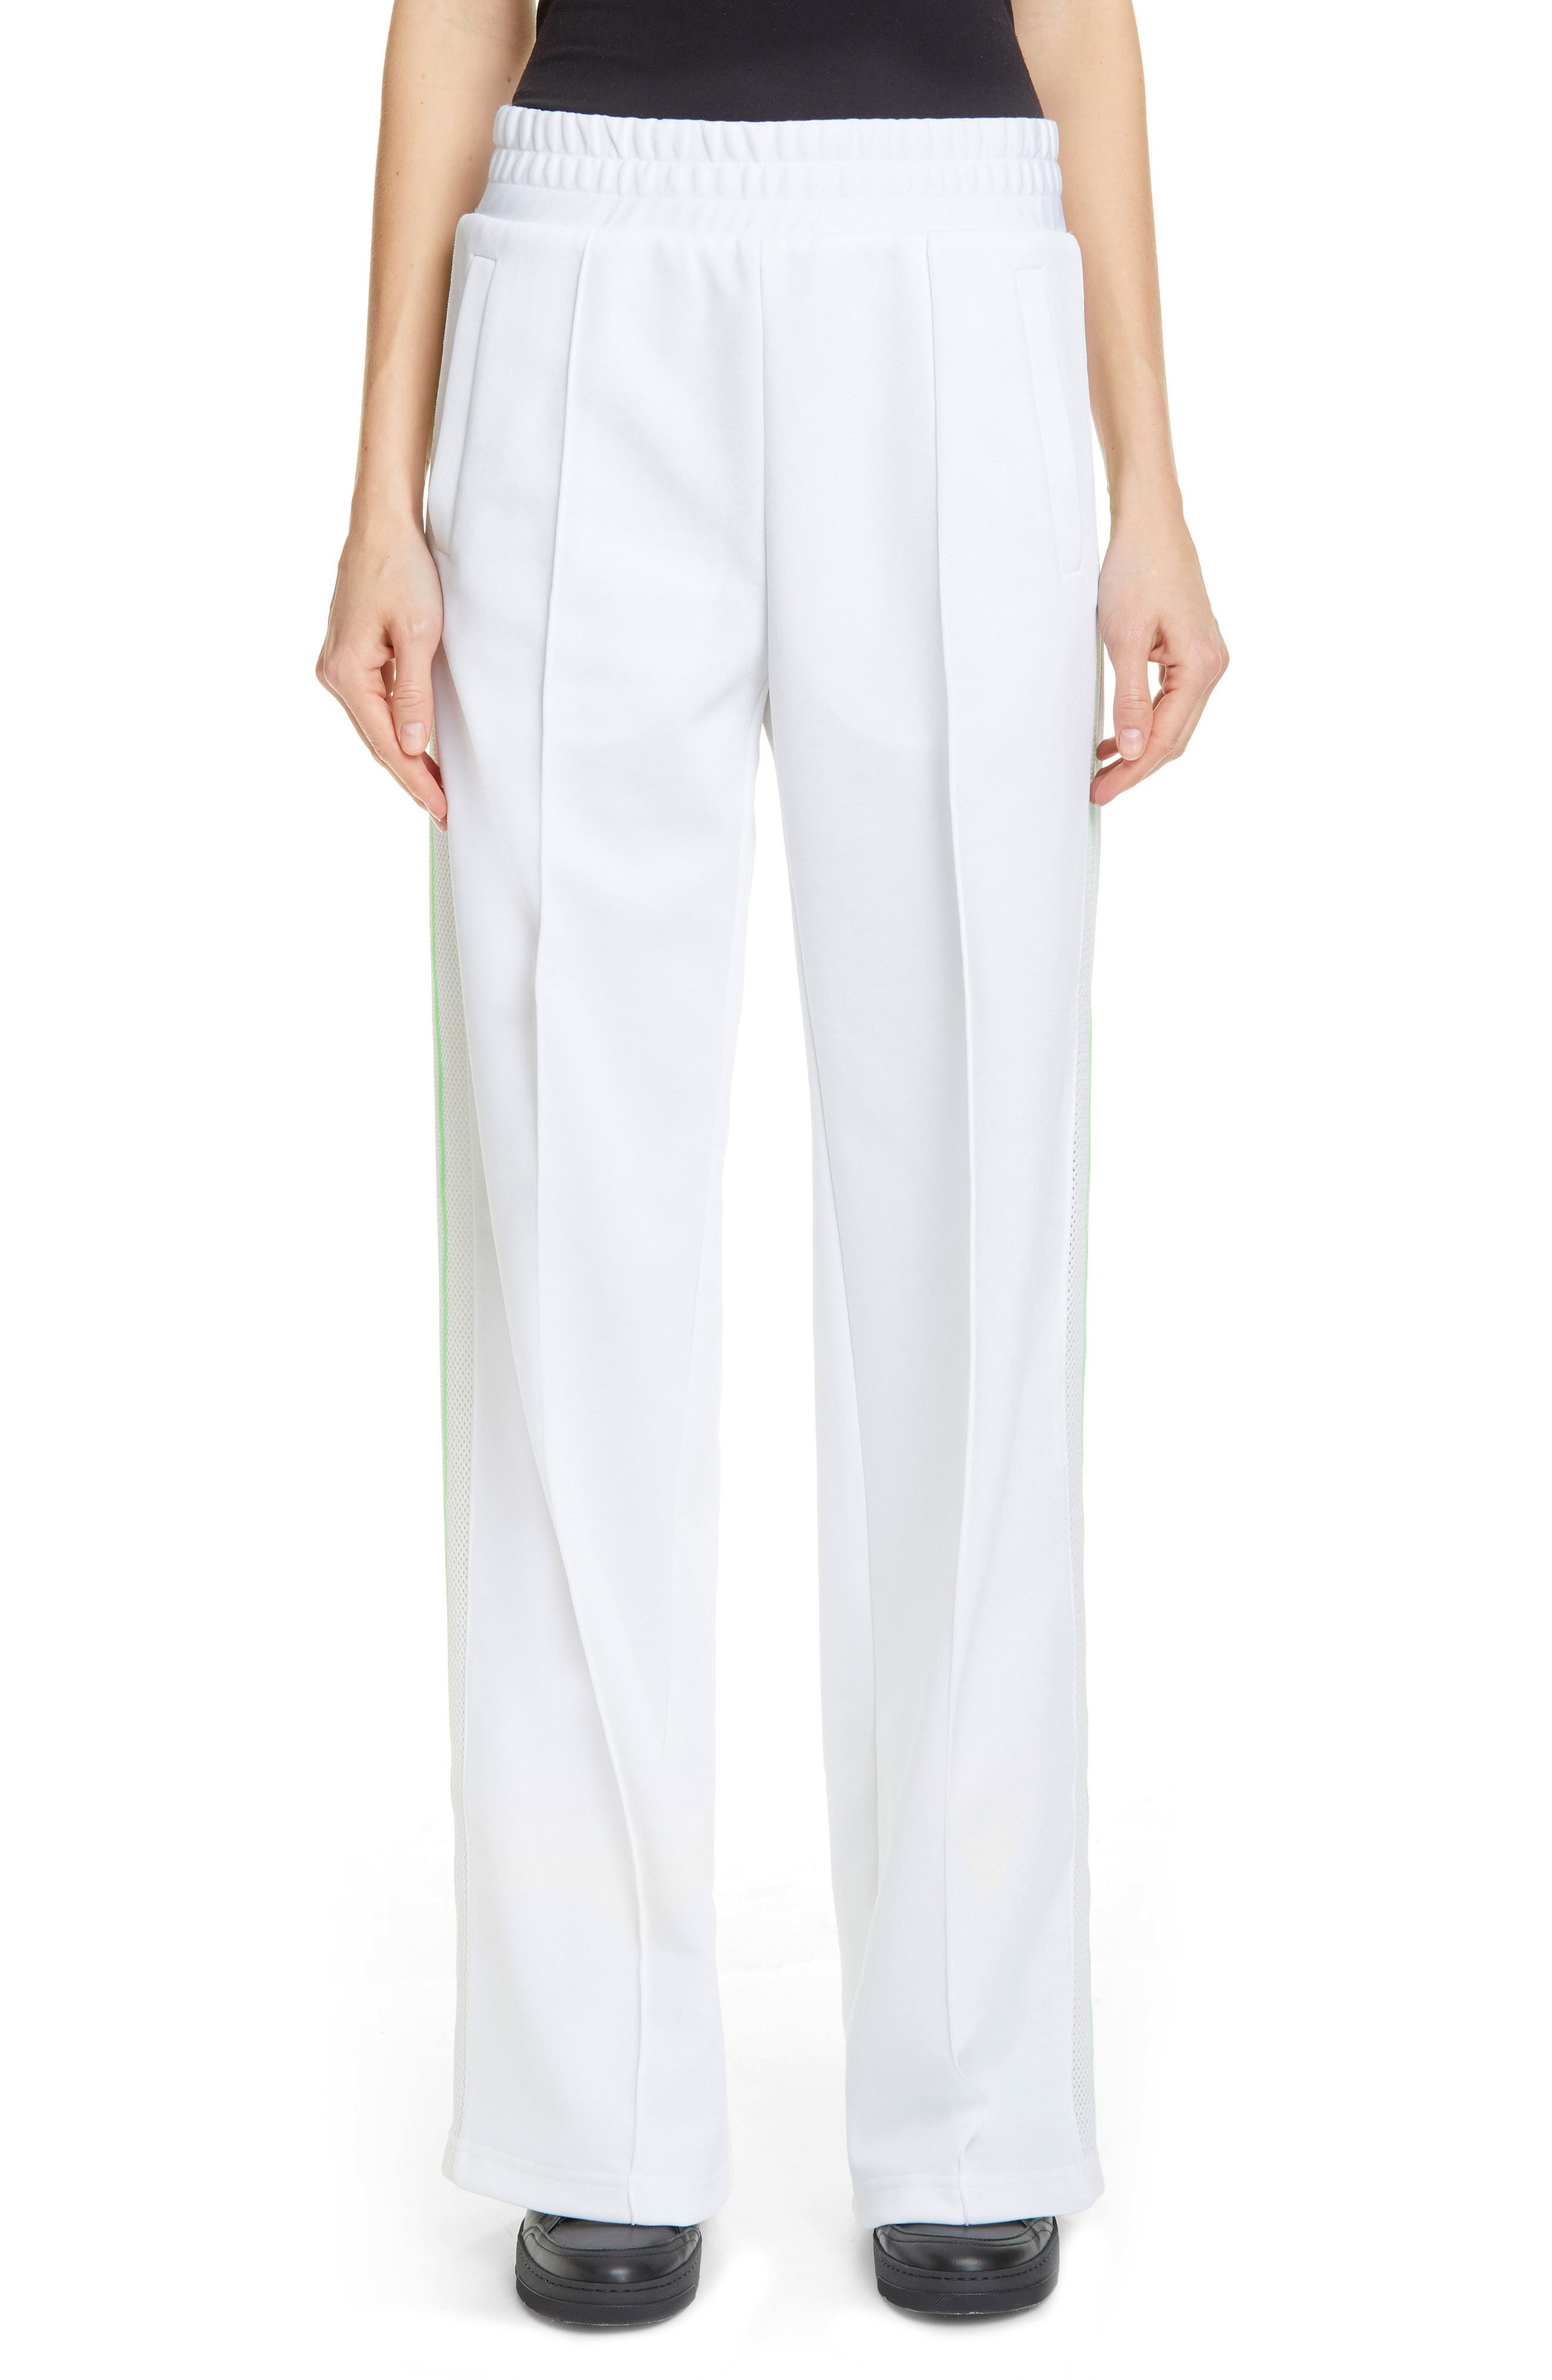 Gym Track Pants,                             Main thumbnail 1, color,                             WHITE